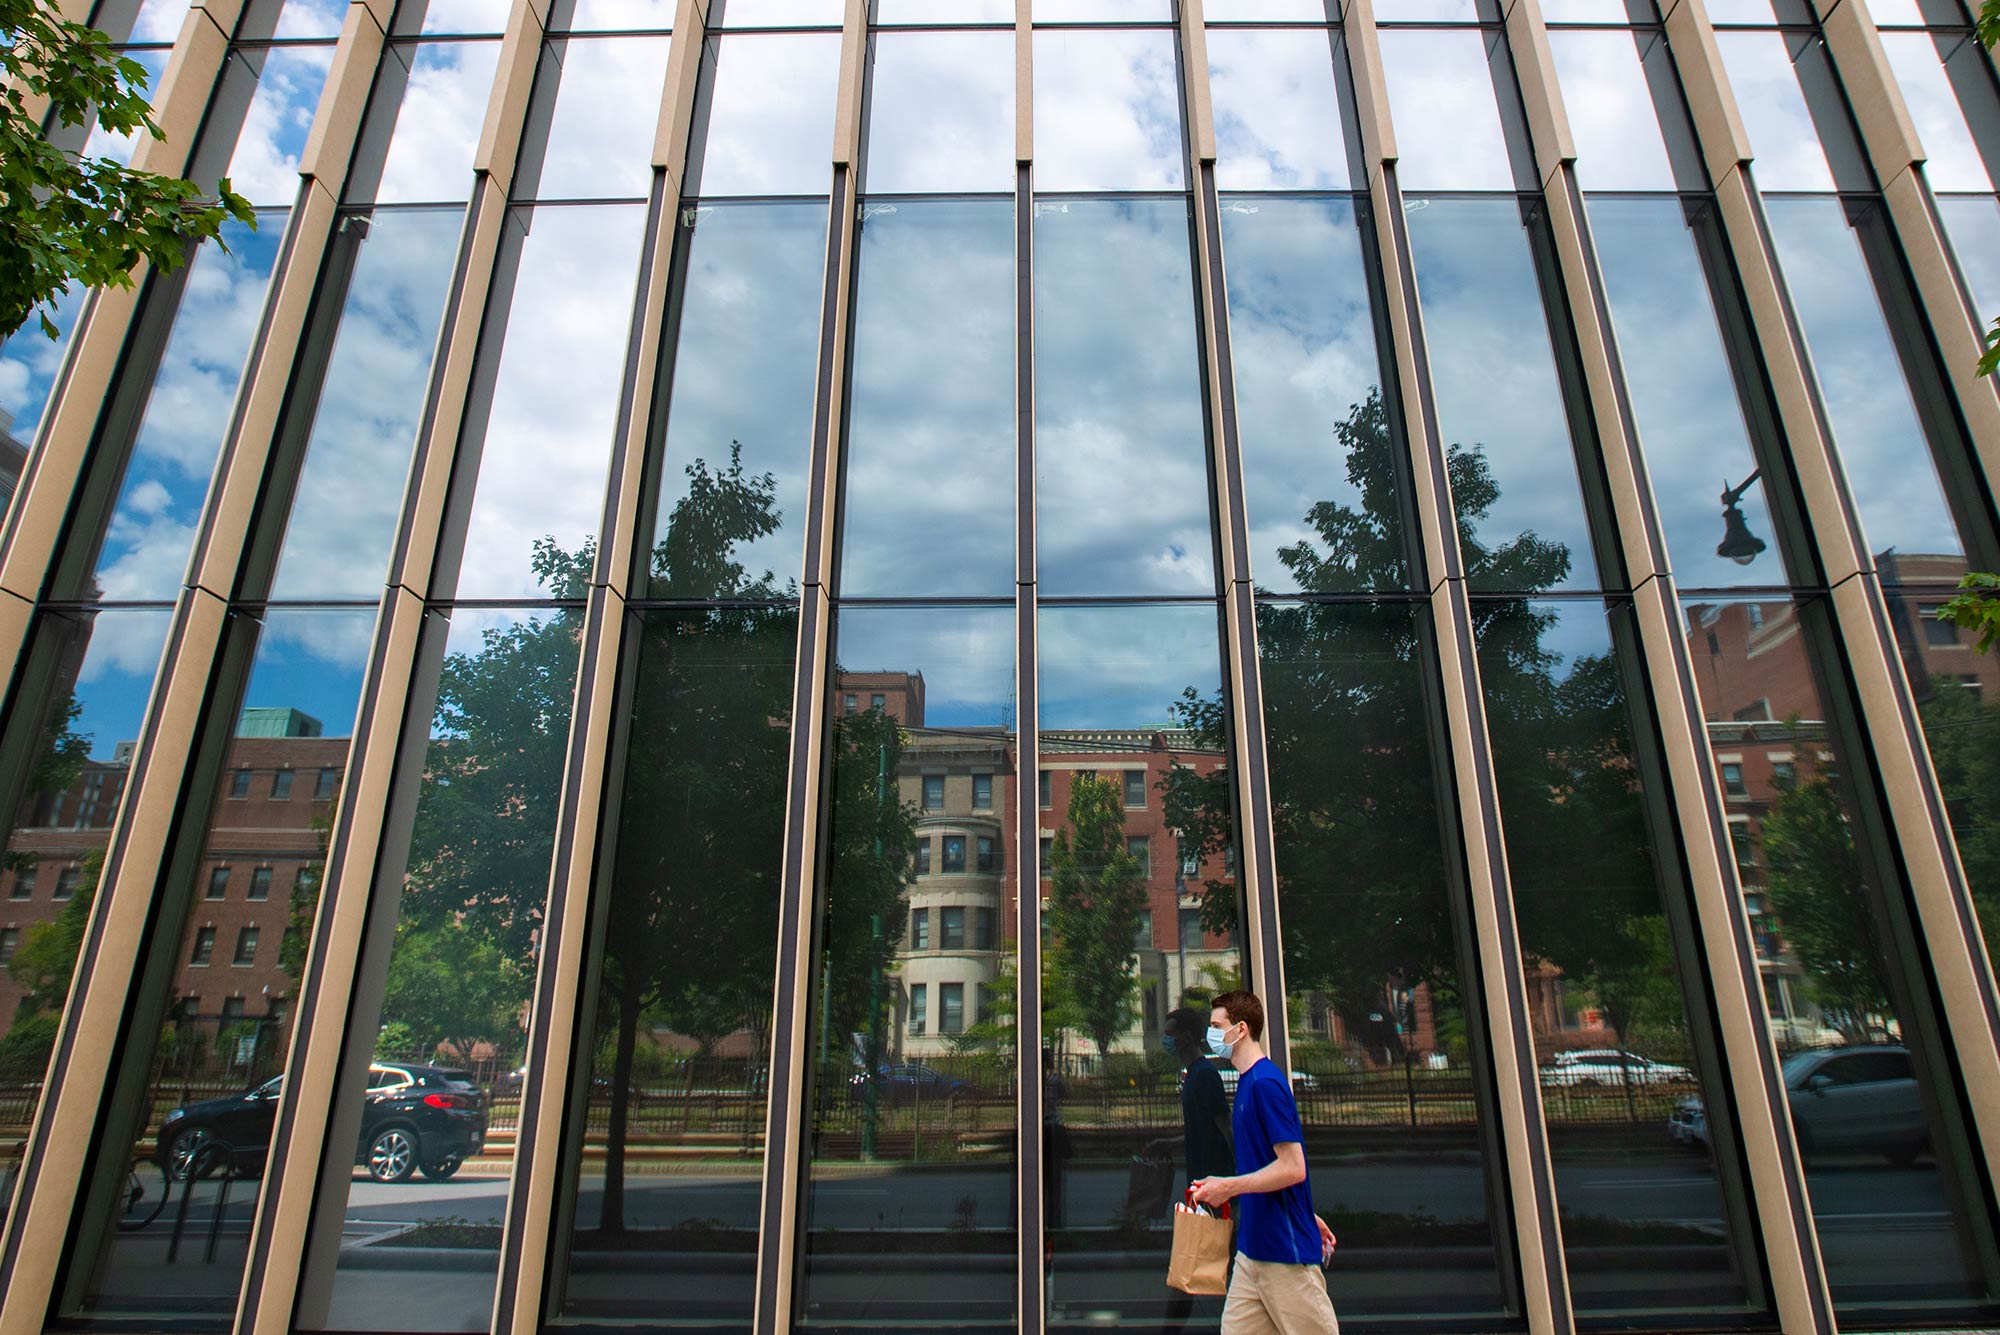 Photo of cloudy blue skies reflect in the windows at CILSE where COVID testing is also being made available to members of the BU community August 19. A student in a mask holds a bagged lunched and walks by.